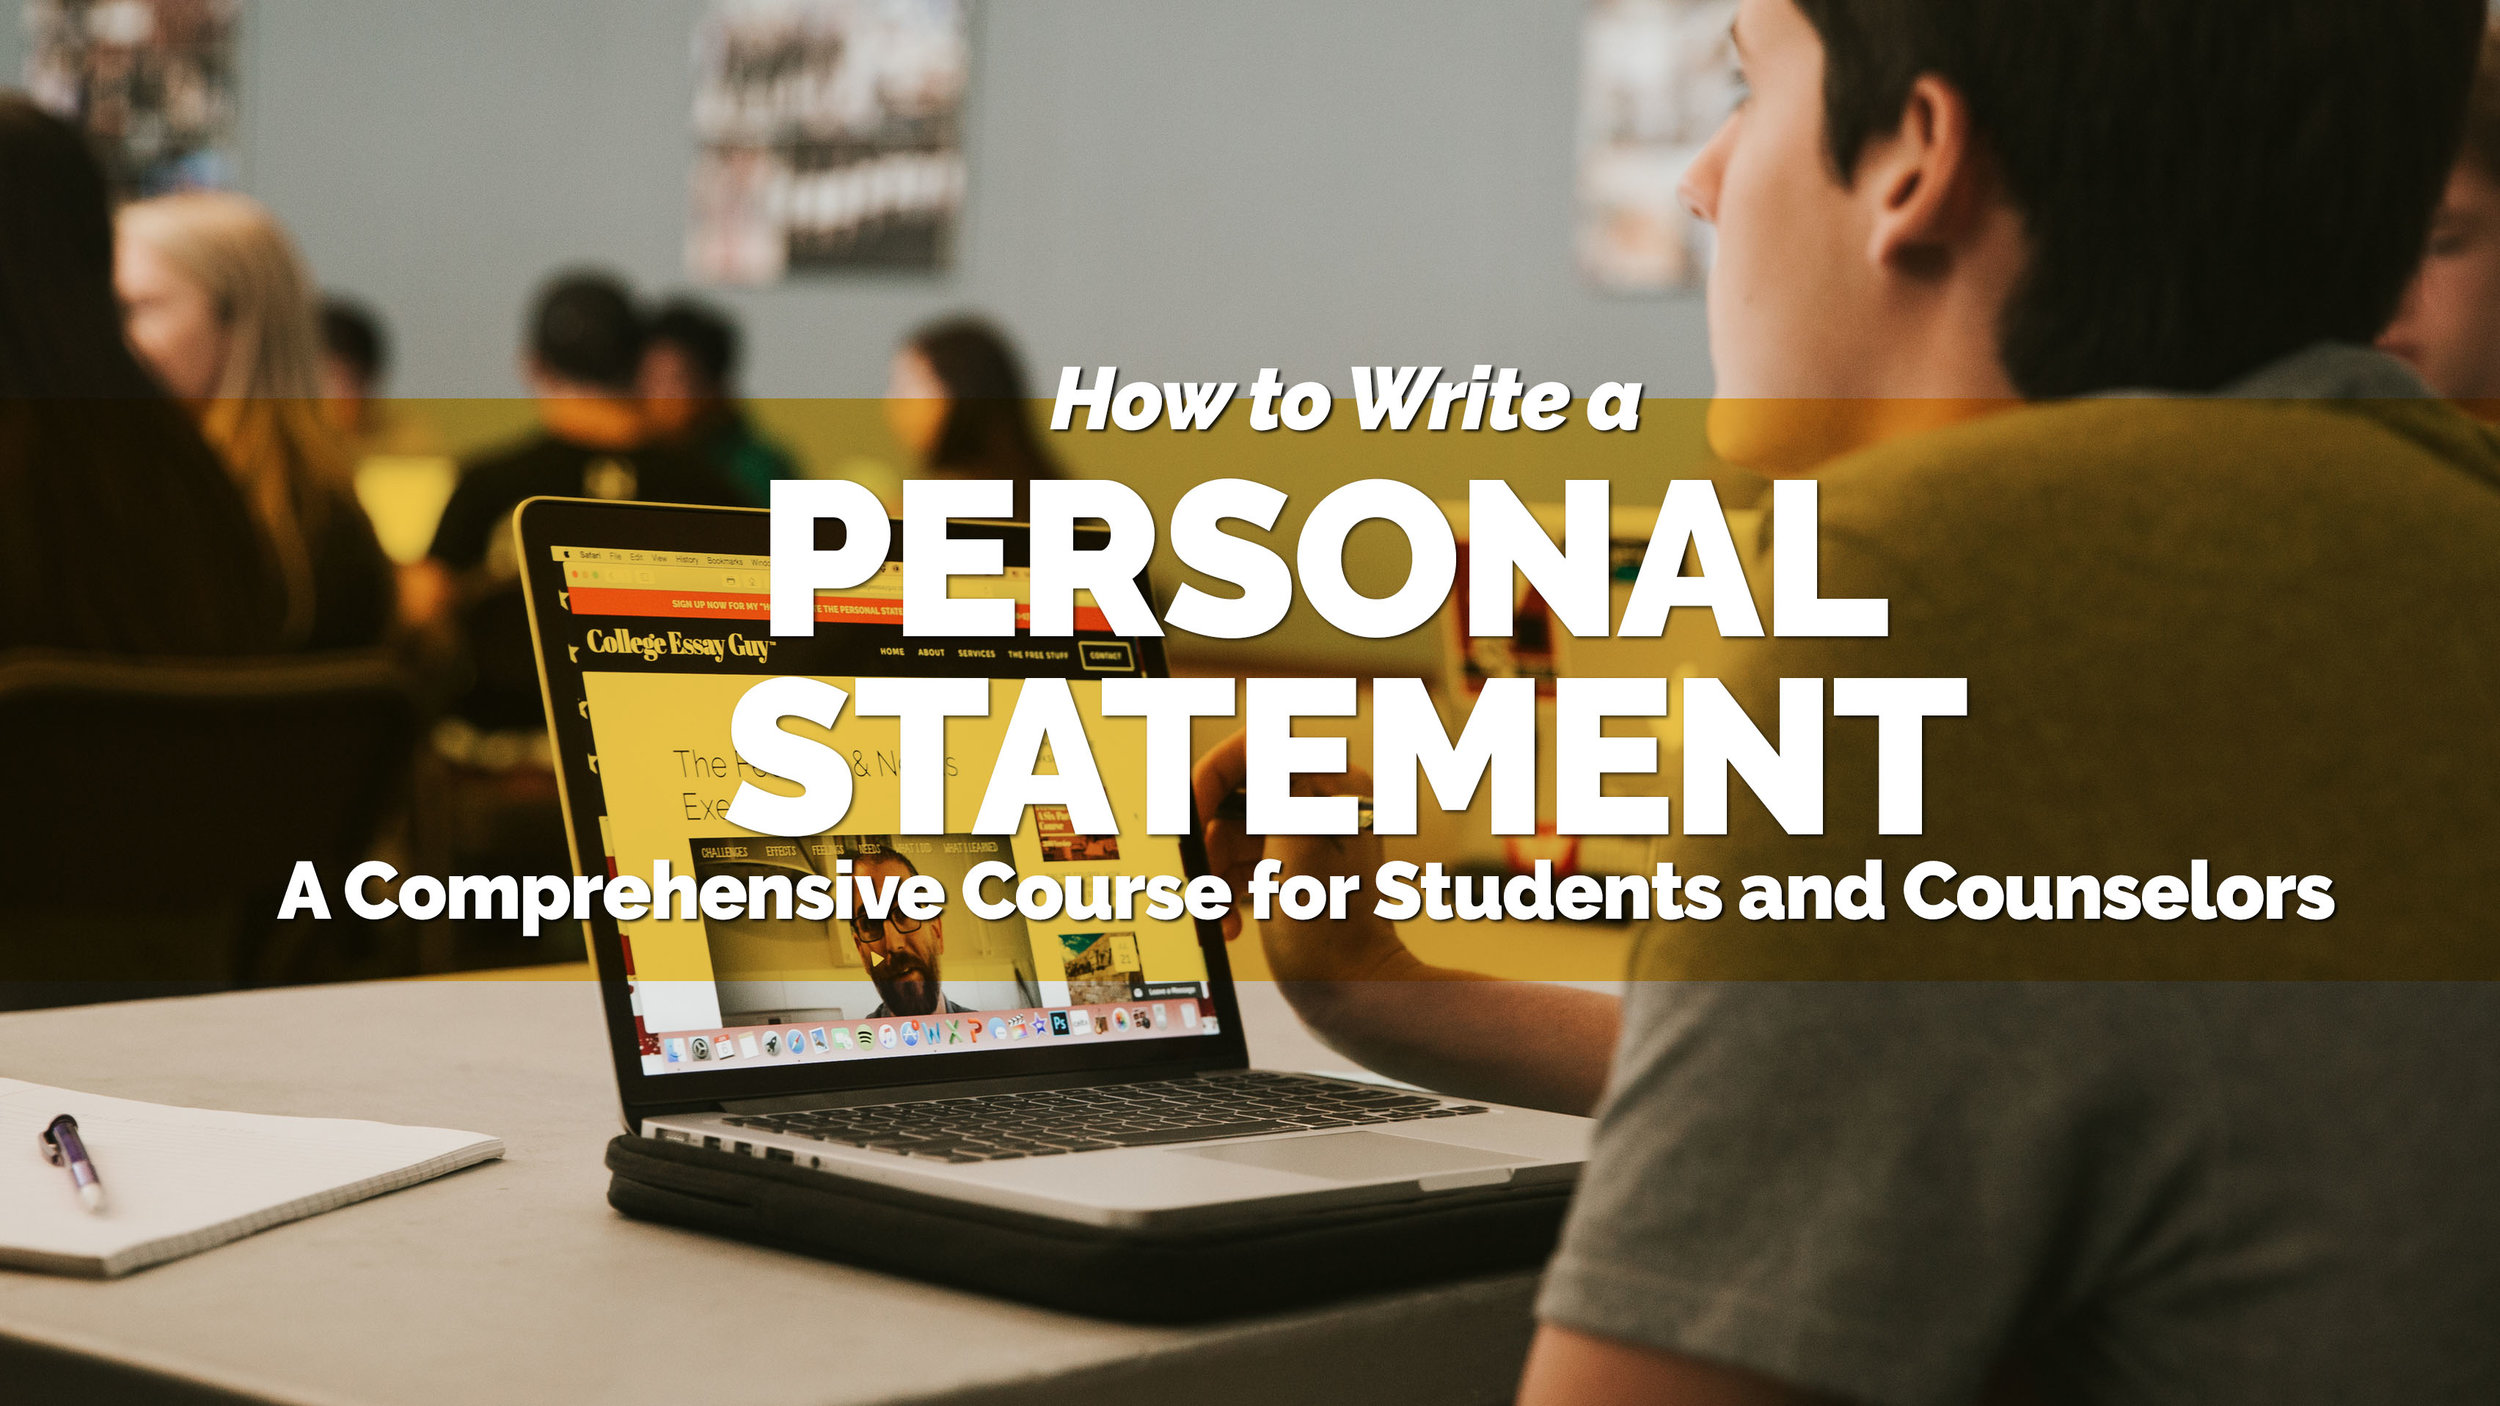 How to Write a Personal Statement.JPG